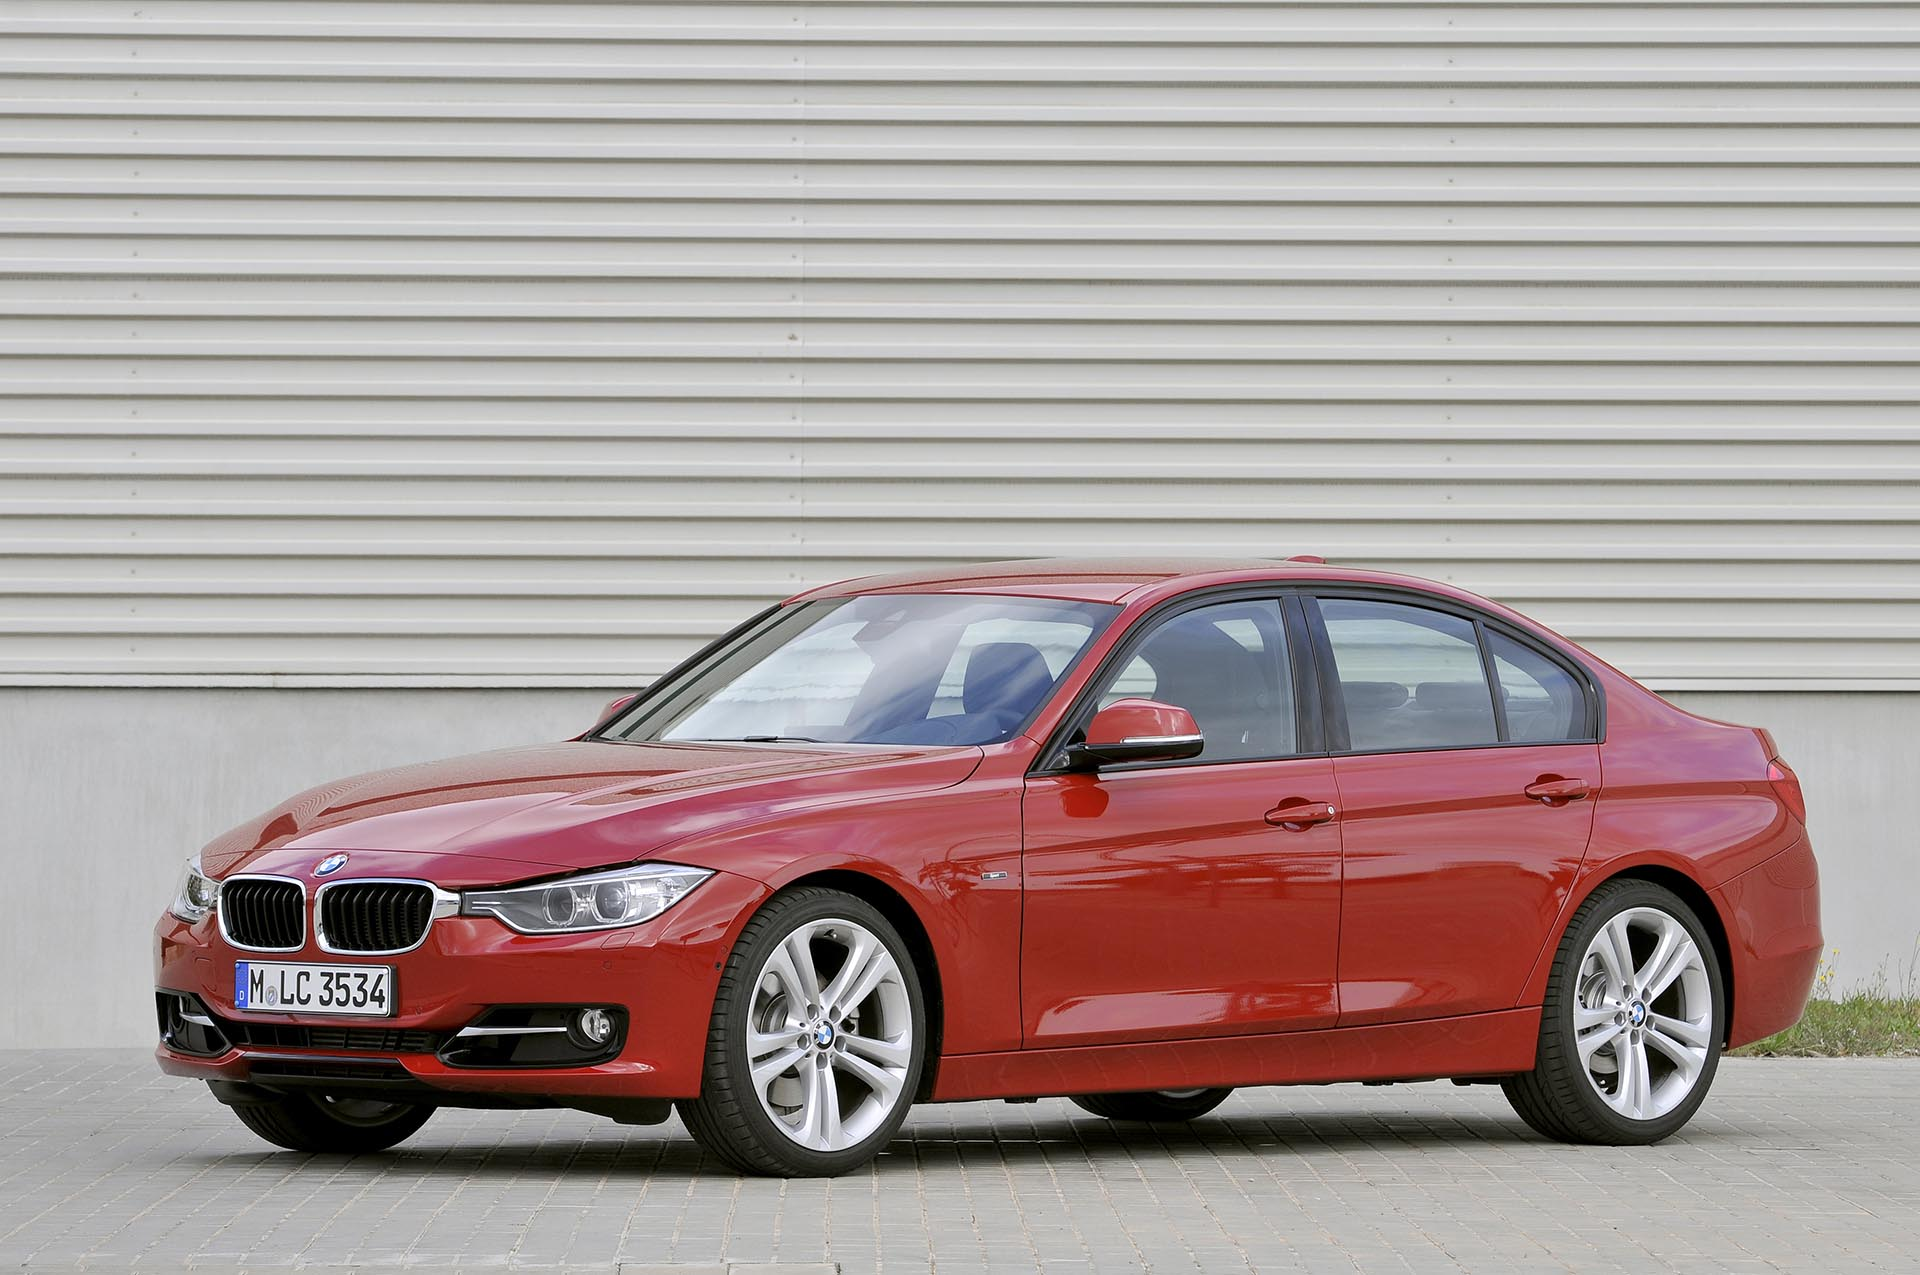 13bmw f30 328i xdrive front profile